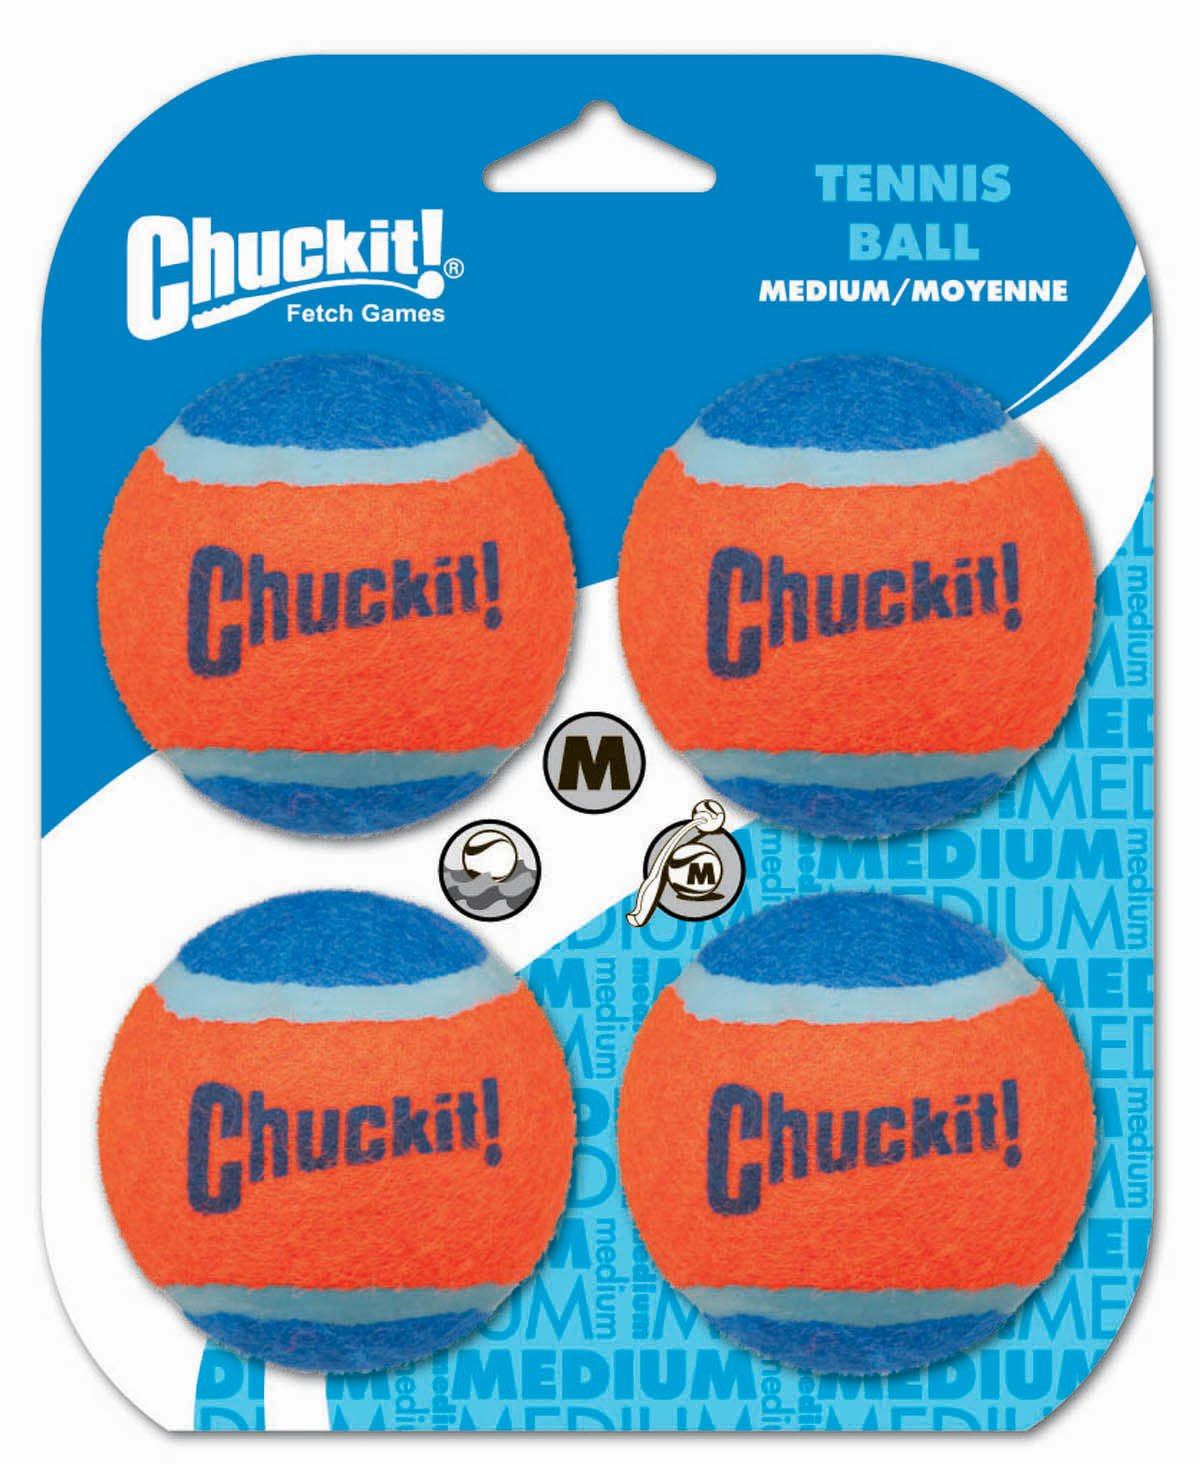 Chuckit! Small Tennis Ball